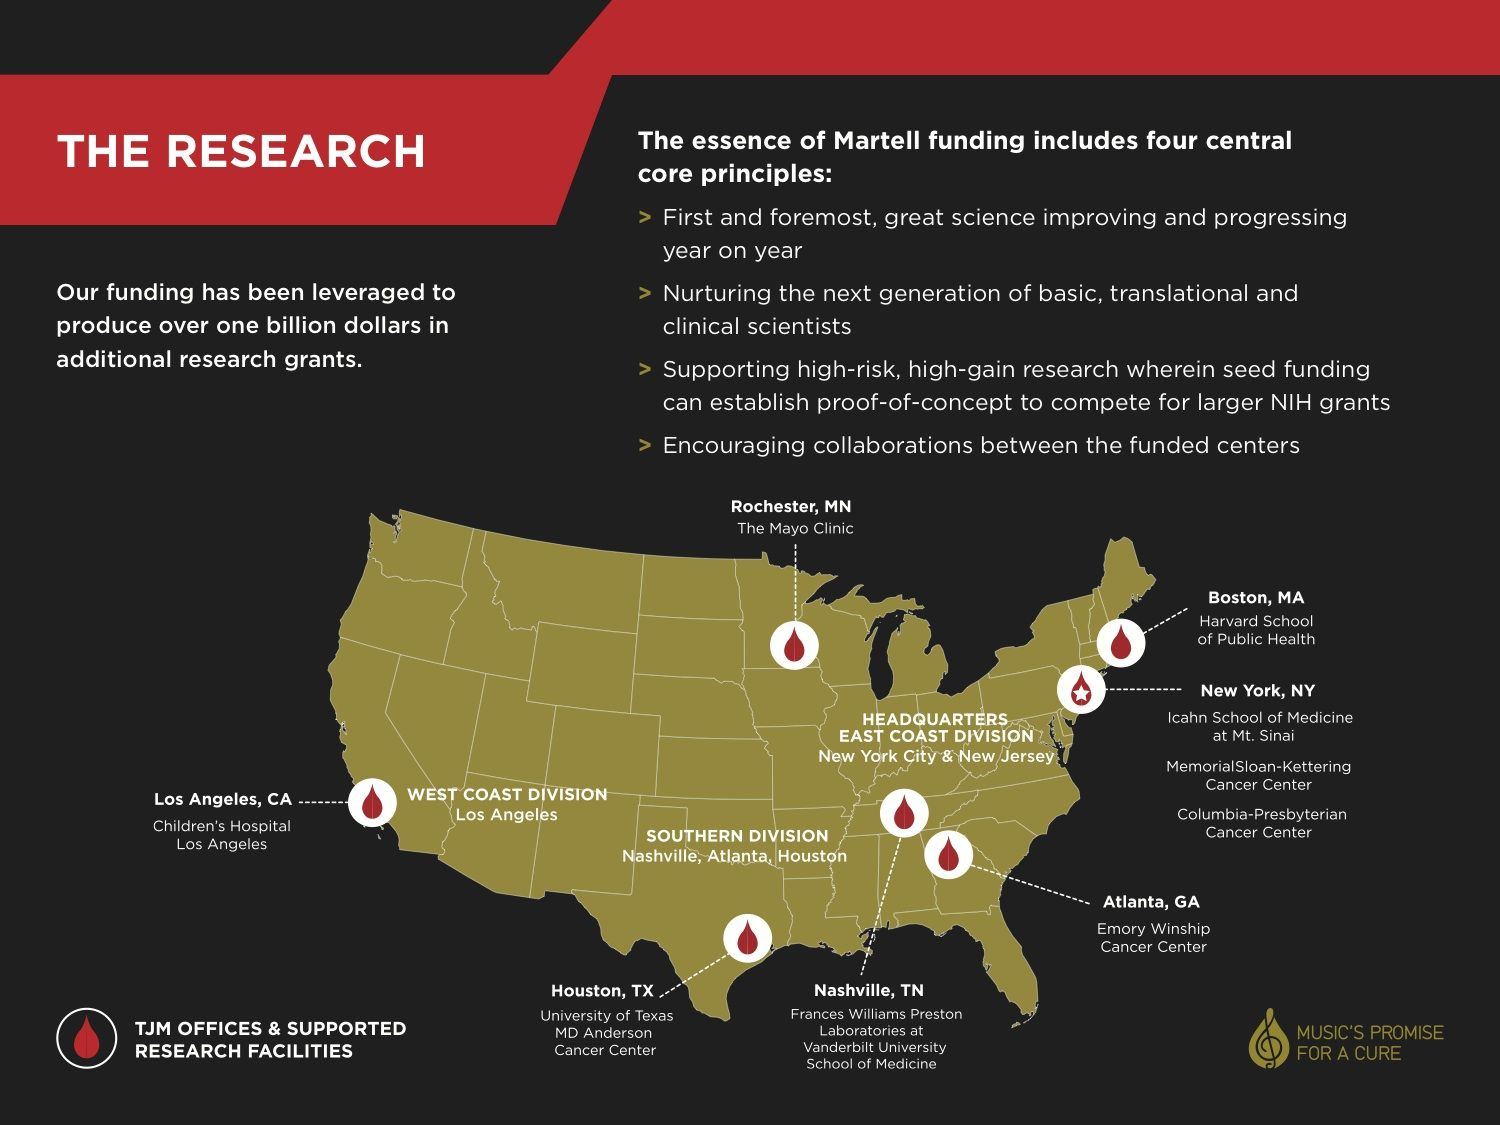 The T.J. Martell Foundation funds innovative #leukemia #cancer and #AIDS research at leading hospitals across the country. #cancerresearch #charity #foundation #nonprofit #cancerawareness